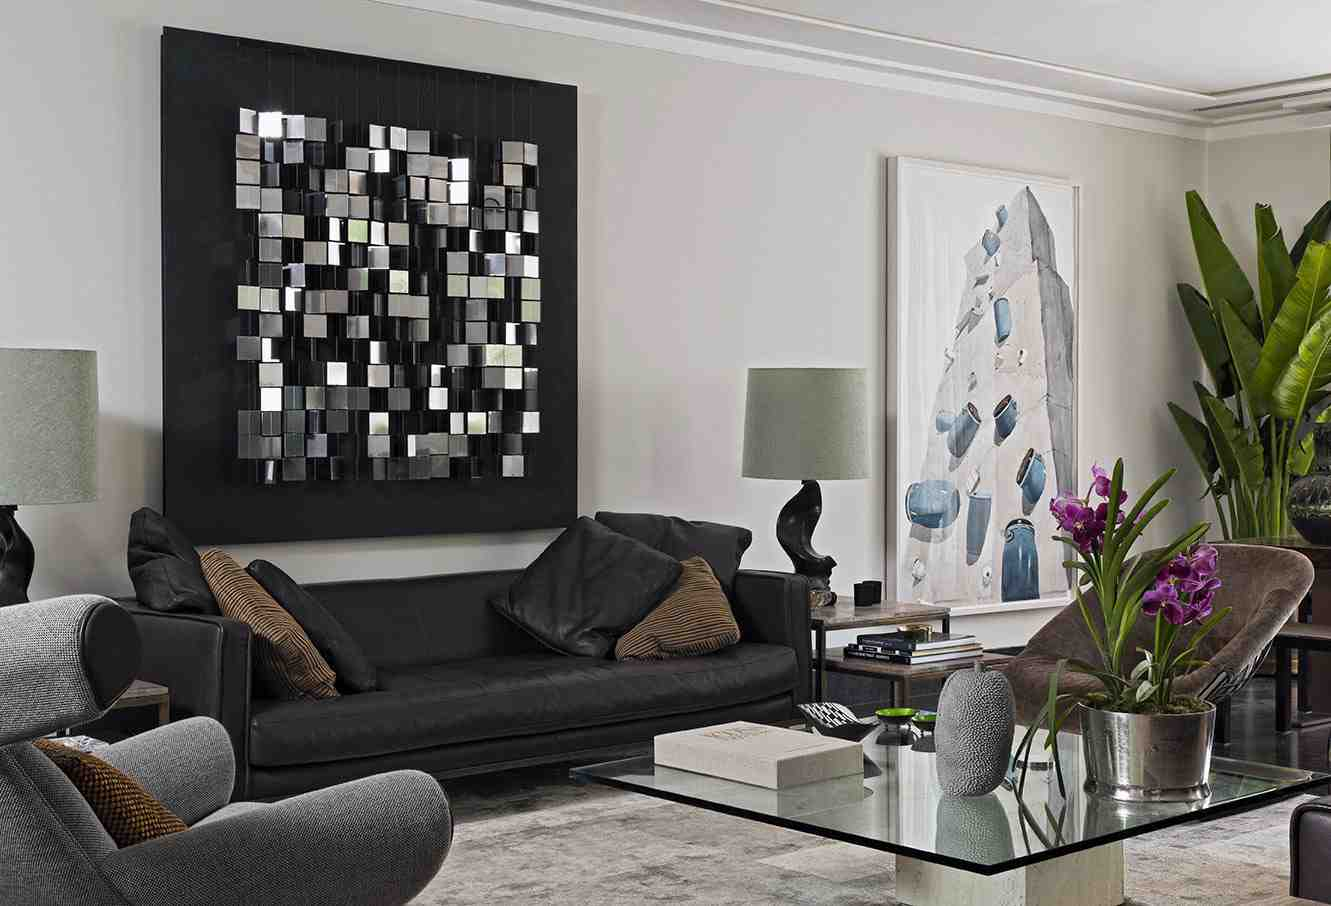 Living room wall decor 5 options decor ideasdecor ideas - How to decorate a living room wall ...